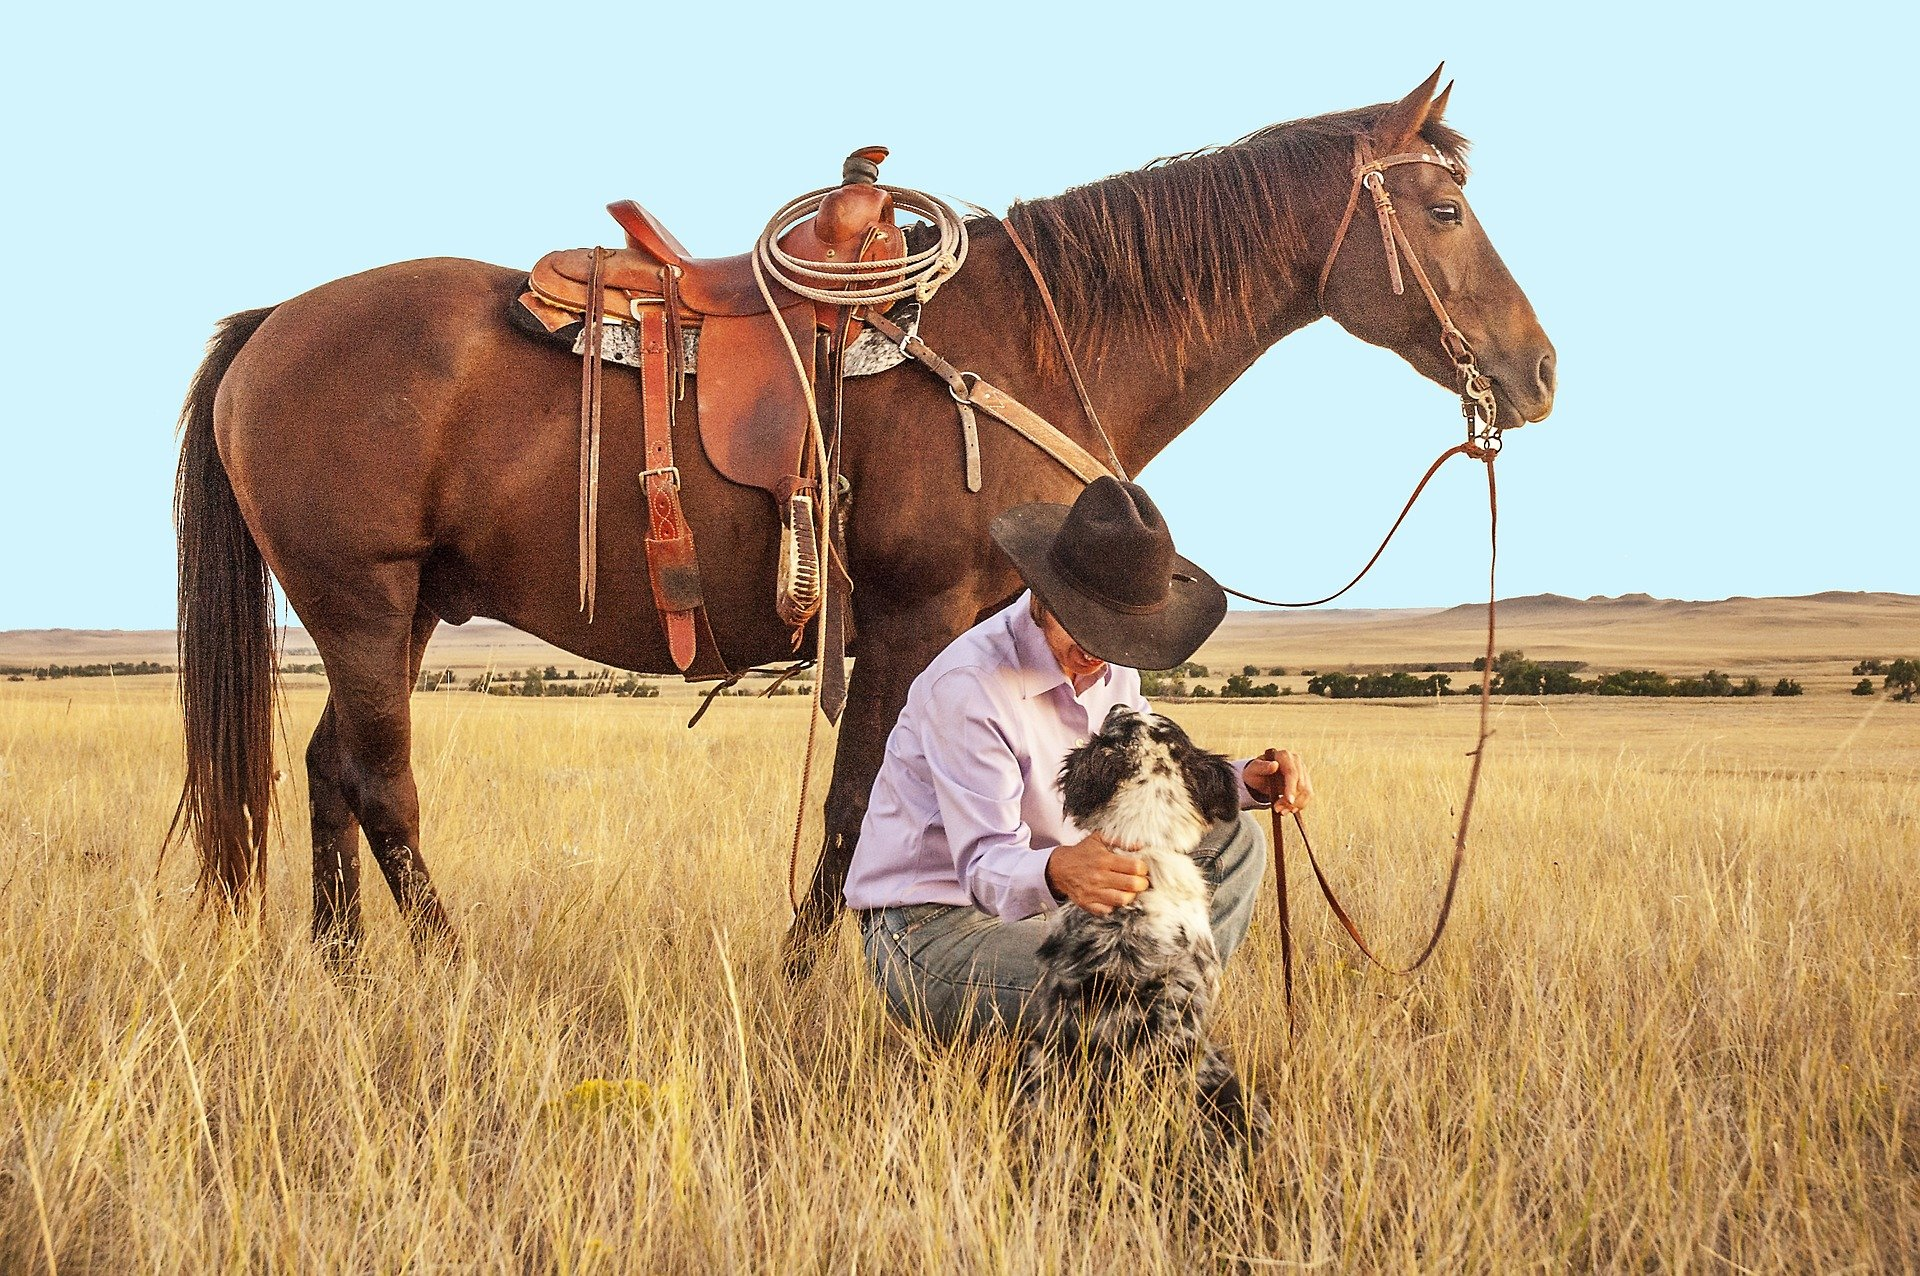 Cowboy with horse and dog | Source: Pixabay